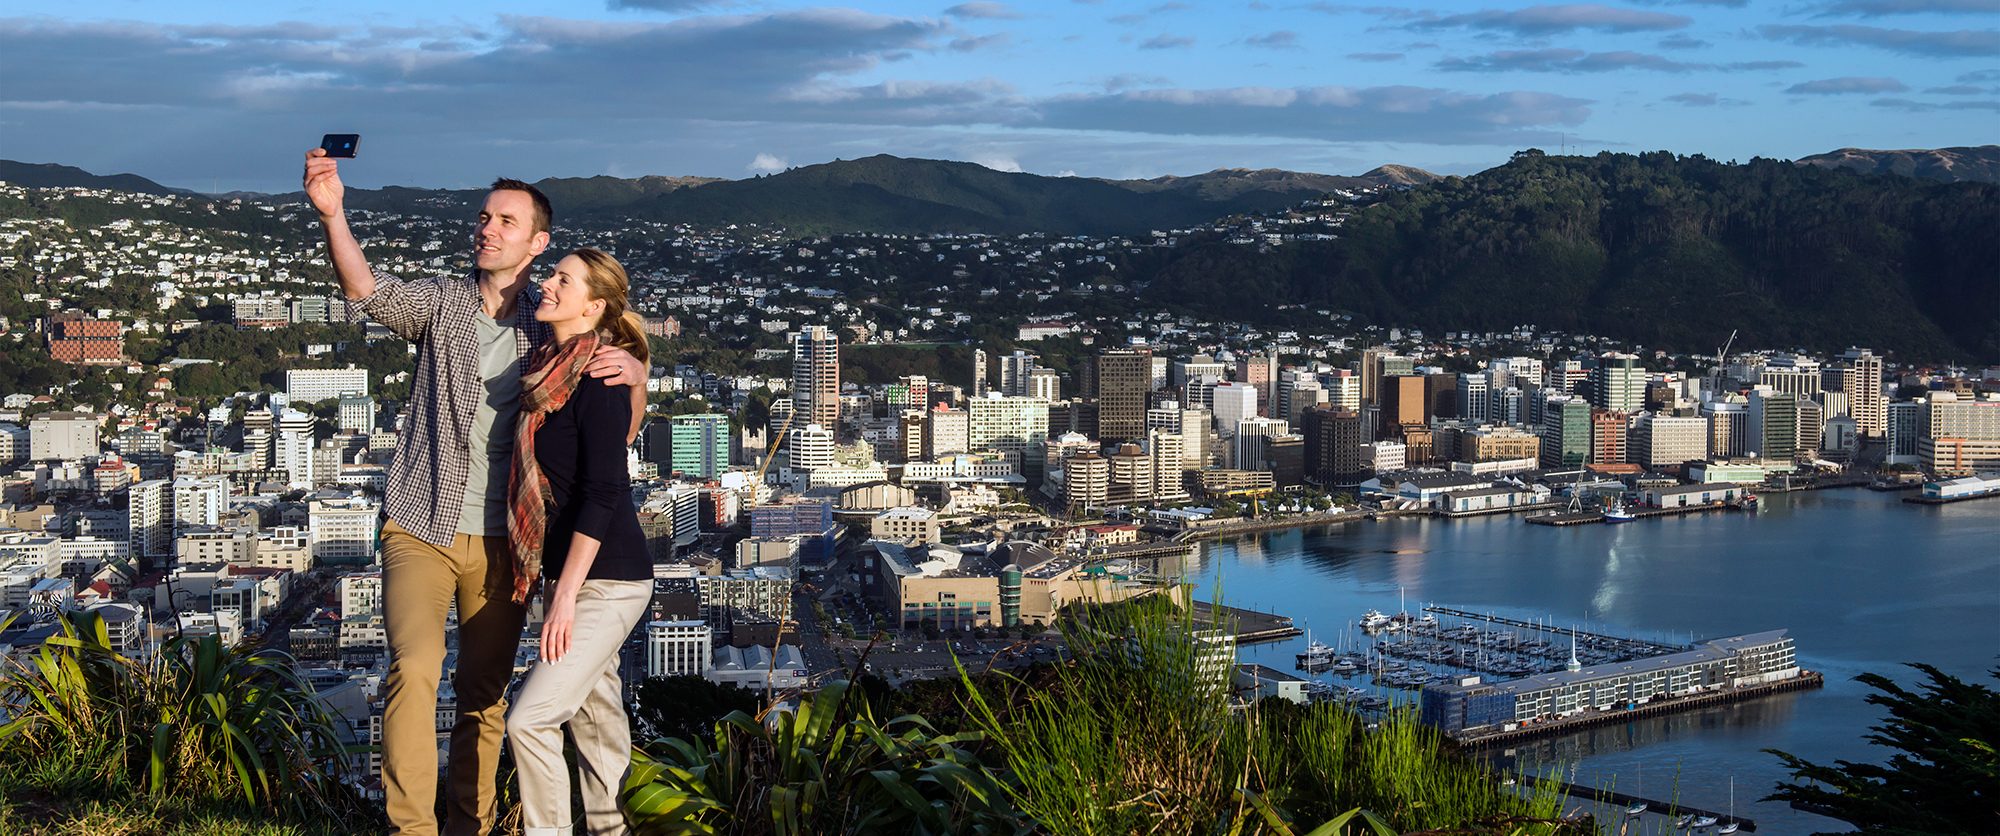 Australia and NZ trip - selfie in Wellington